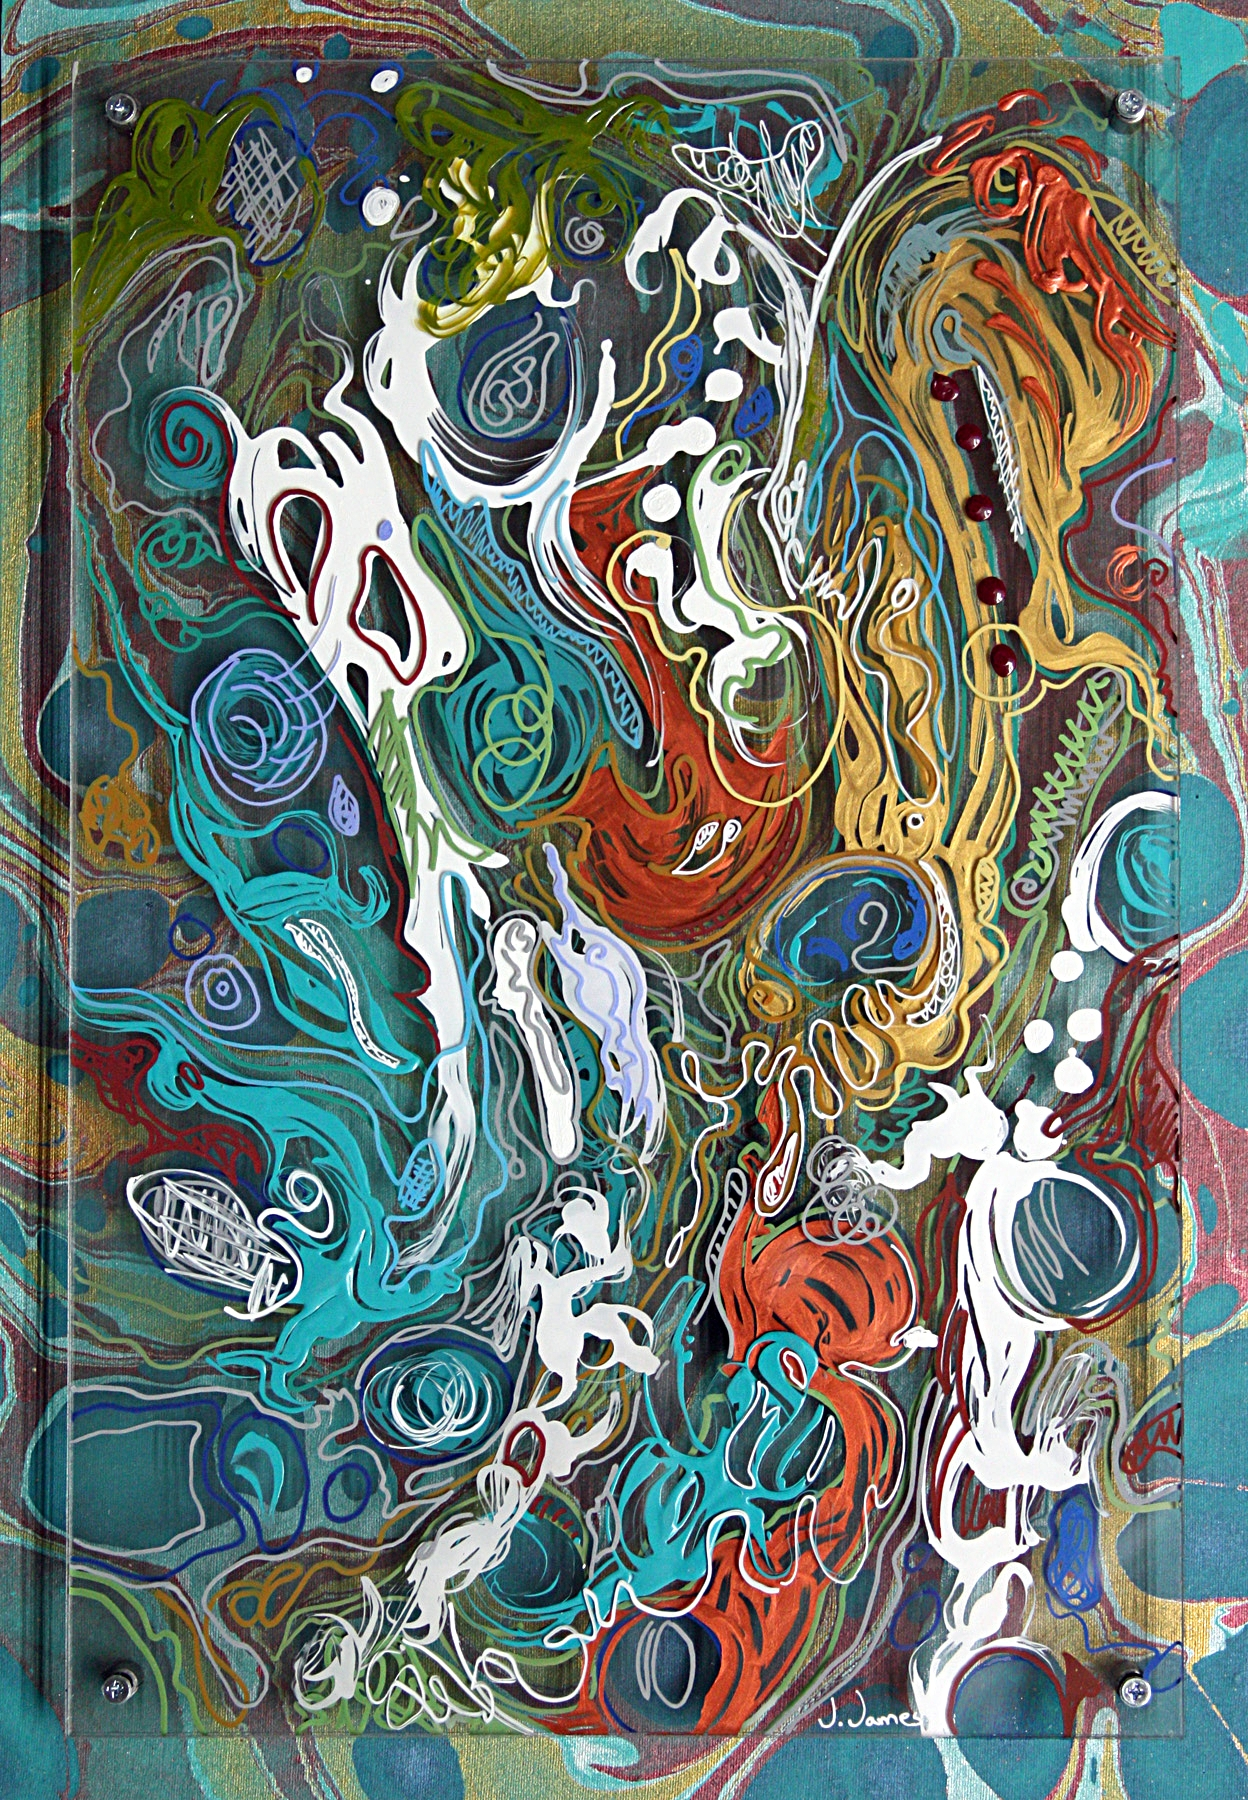 "Ebb and Flow, 21"" x 14.5"" Mixed Media Acrylic on Multi Panel Acrylic"